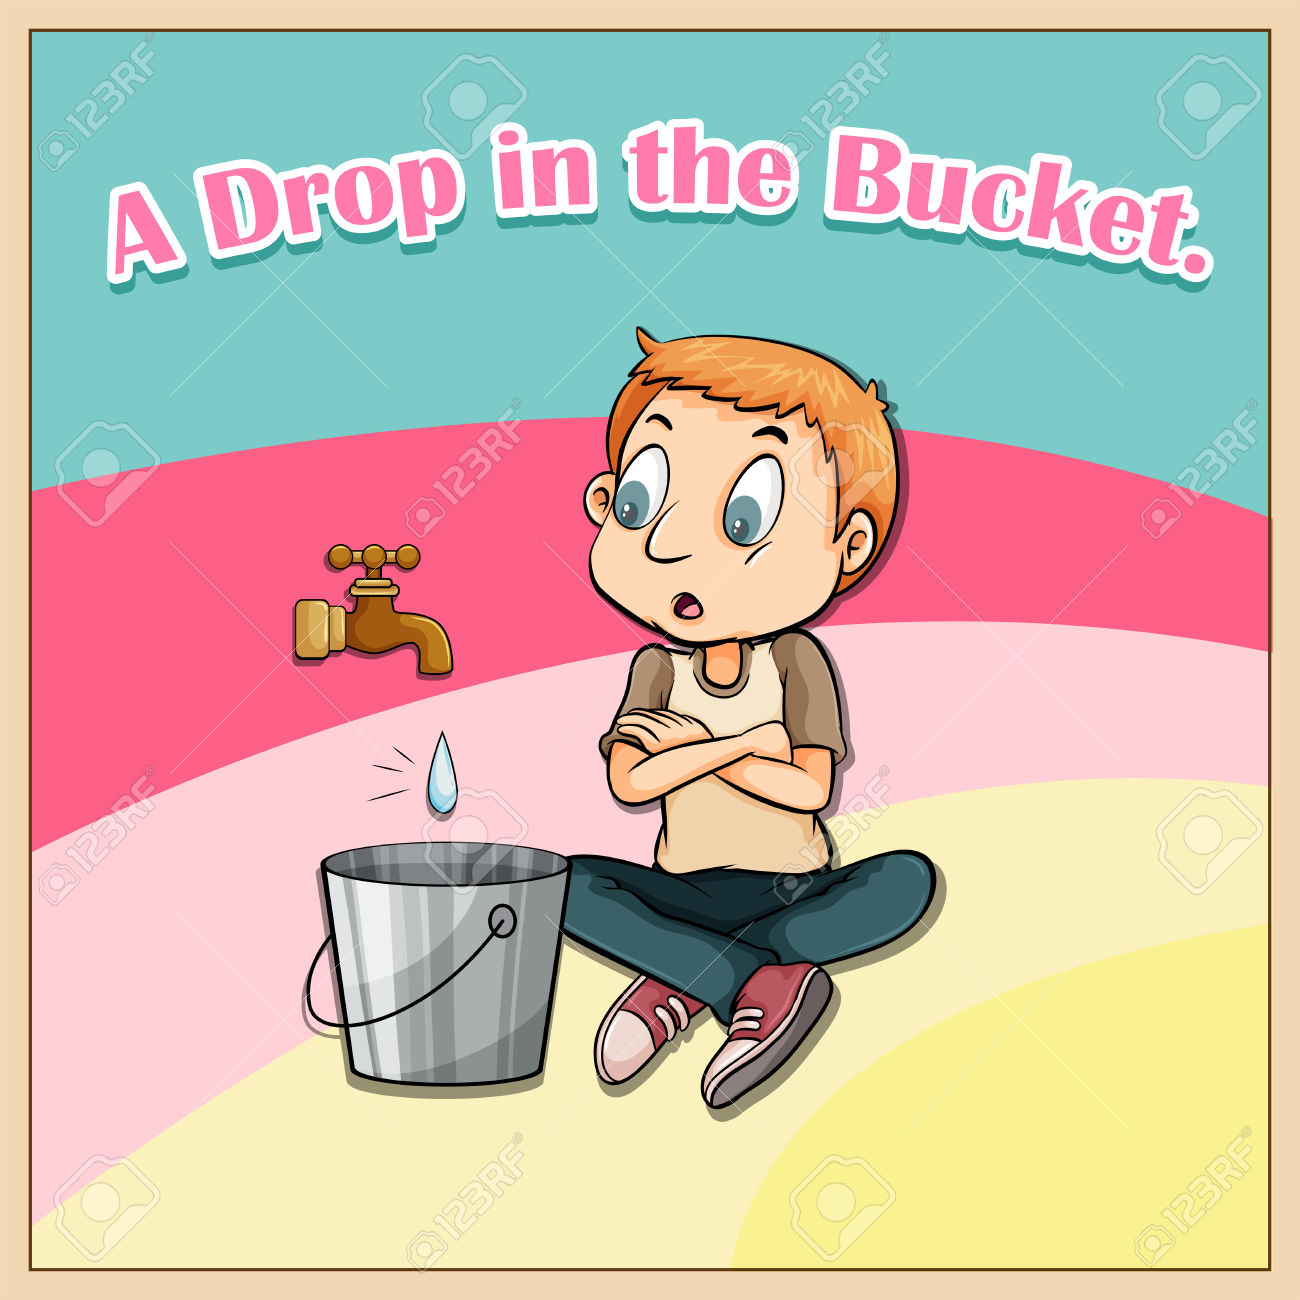 Idiom Saying A Drop In The Bucket Royalty Free Cliparts, Vectors.